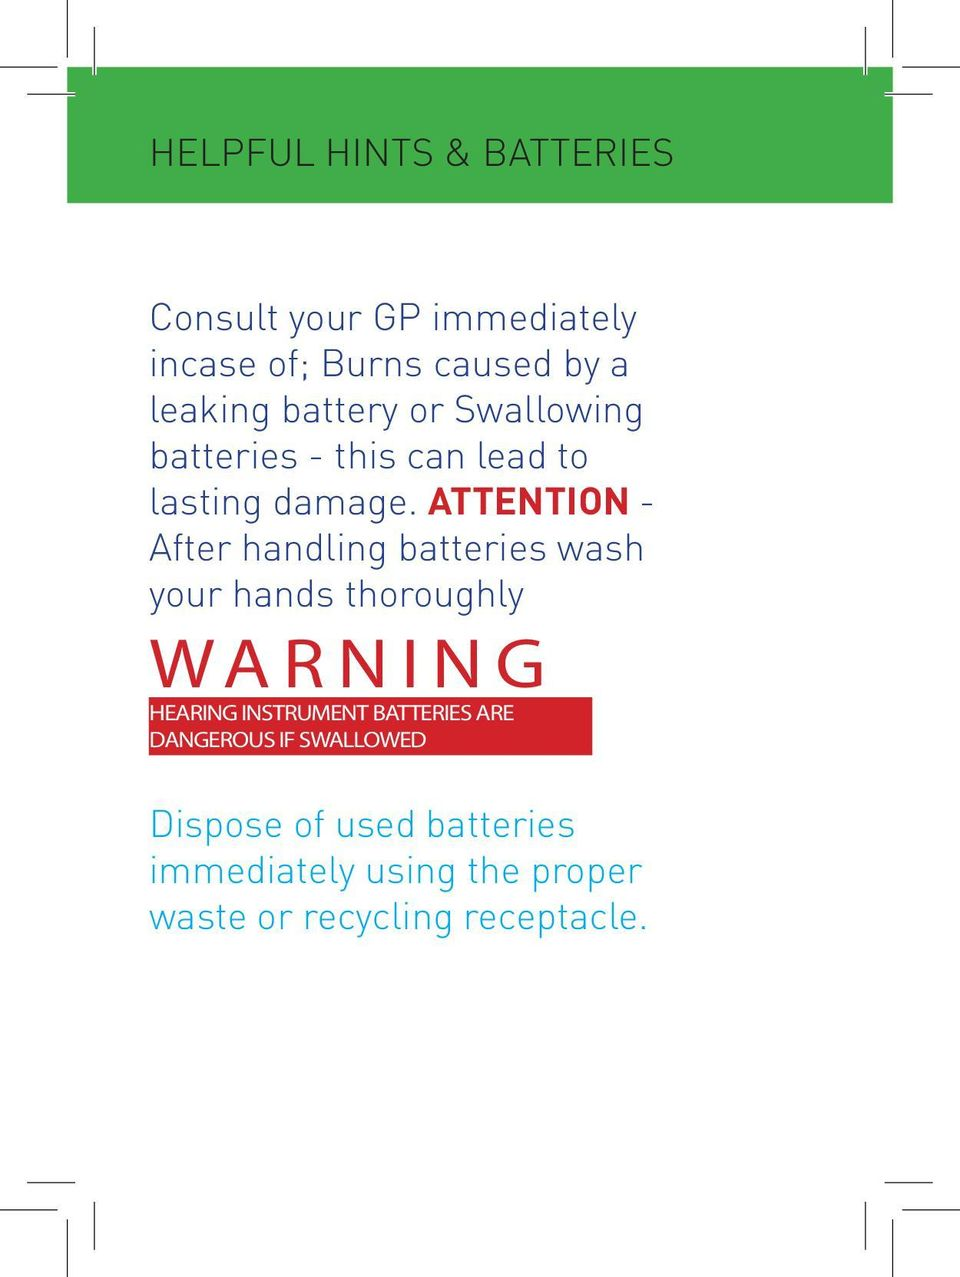 ATTENTION - After handling batteries wash your hands thoroughly WARNING HEARING INSTRUMENT